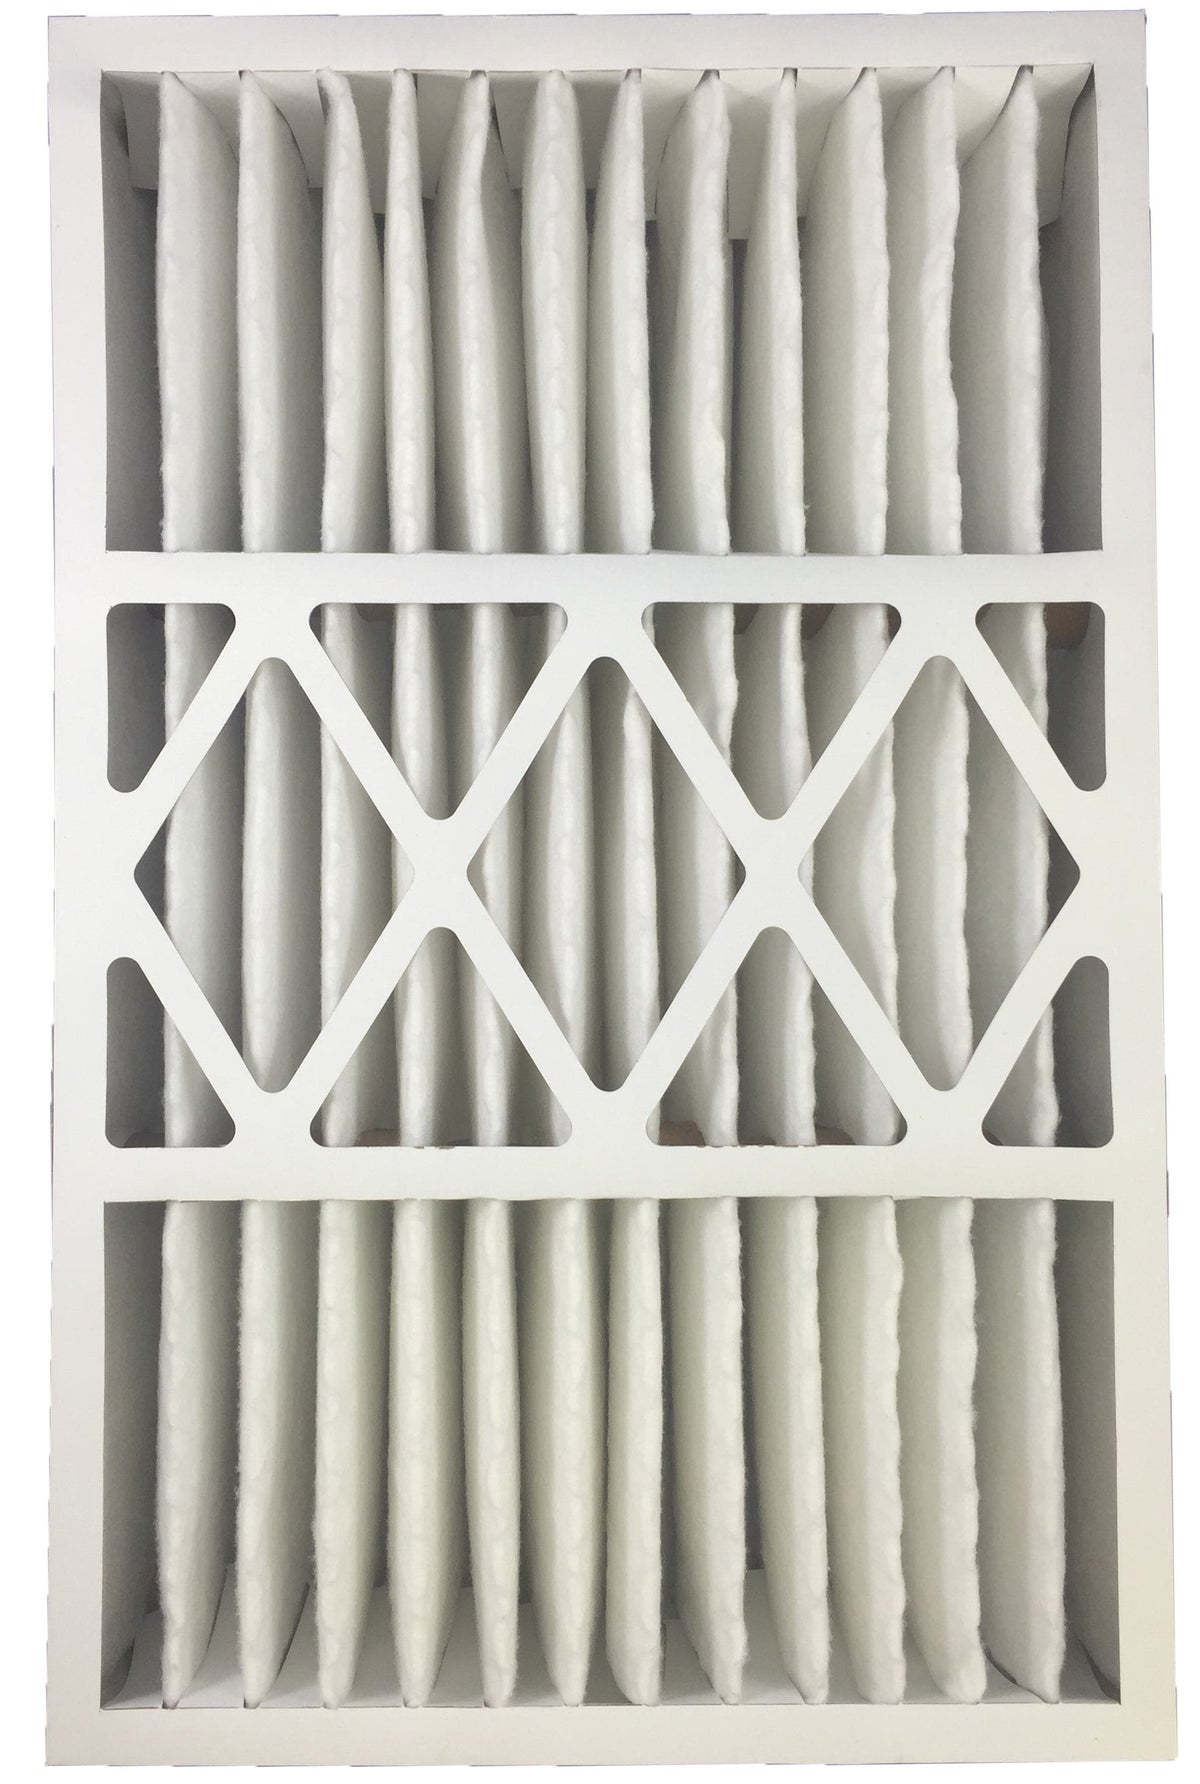 Atomic EXPXXFIL0016 16x25x5 Carrier Replacement MERV 13 Air Filter - 2 Pack